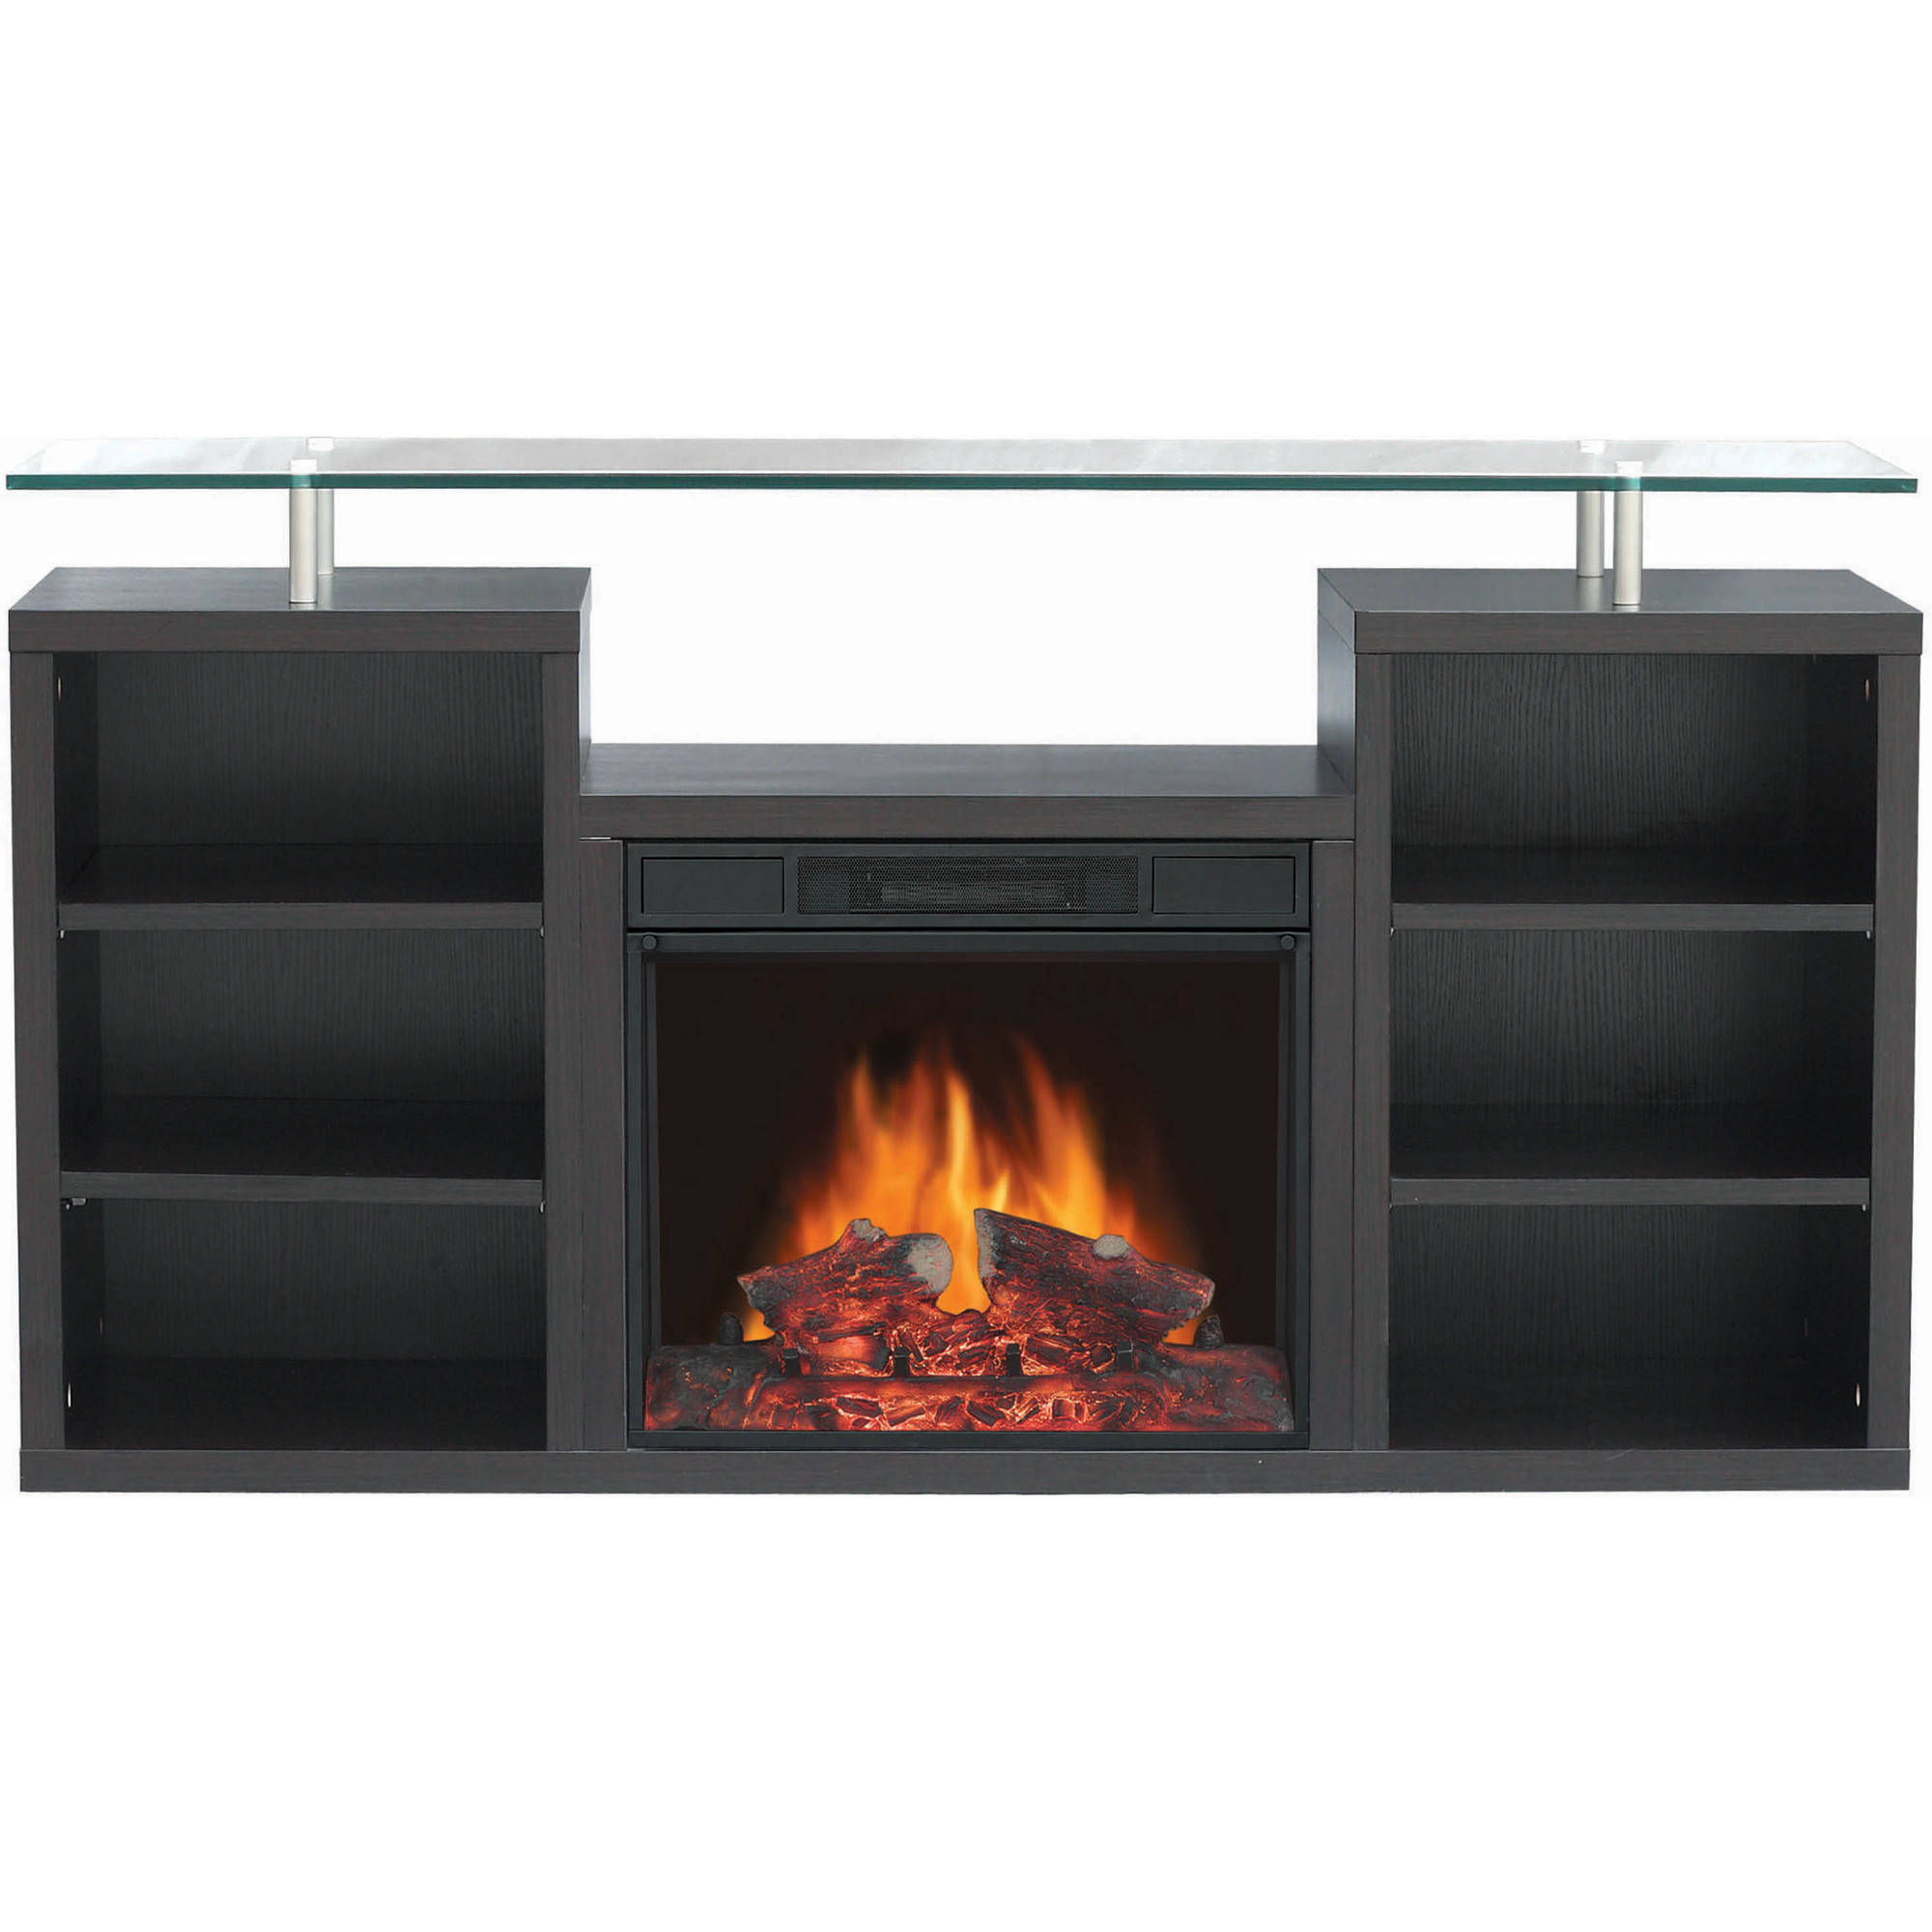 "Decor Flame Media Electric Fireplace for TVs up to 60"", Dark Walnut"